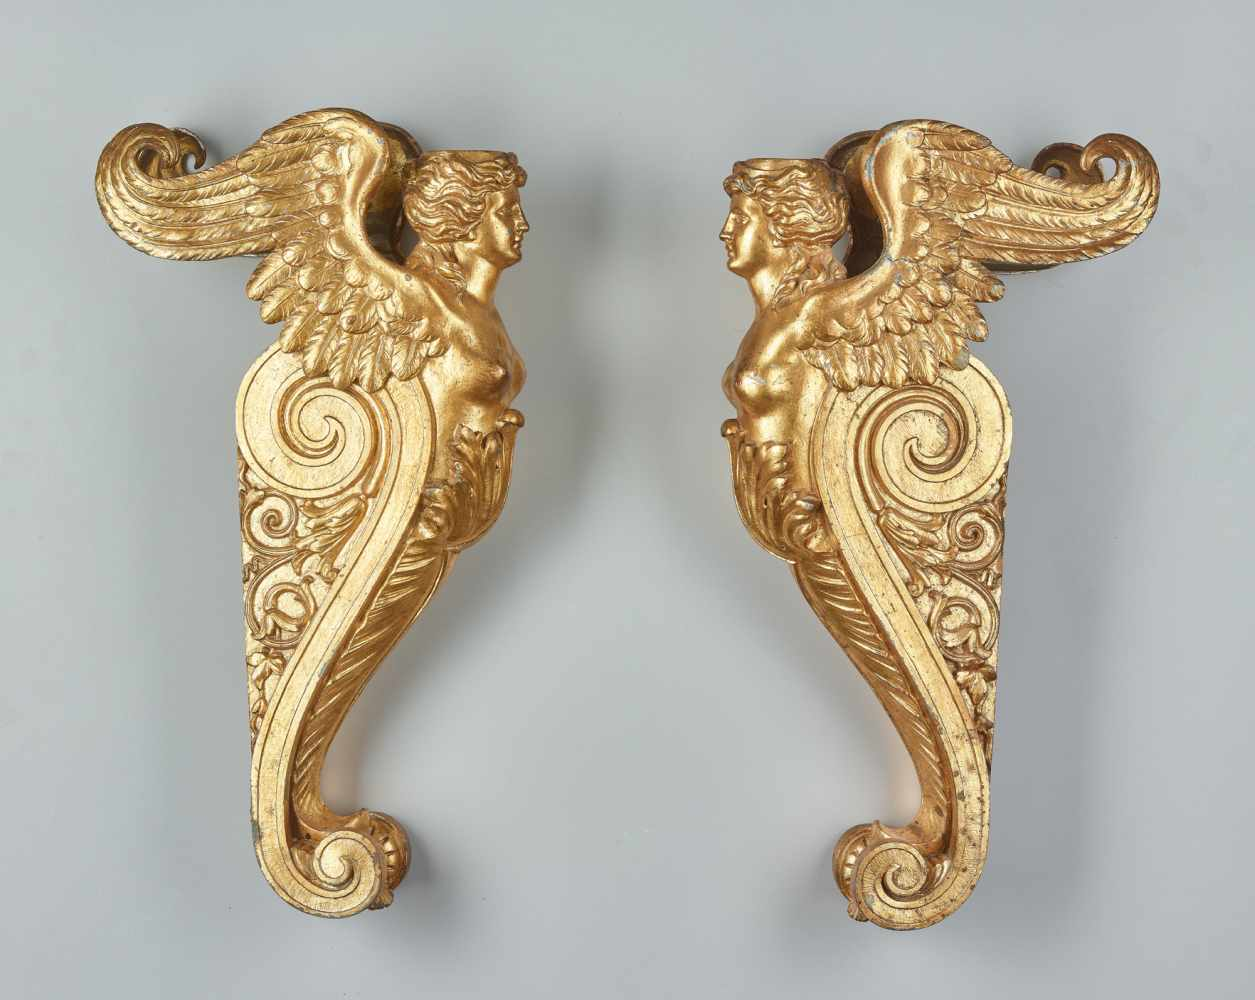 A LARGE VIENNESE PAIR OF 19TH CENTURY GILT CARYATIDSWhite metal with gold lacquer - Image 3 of 6